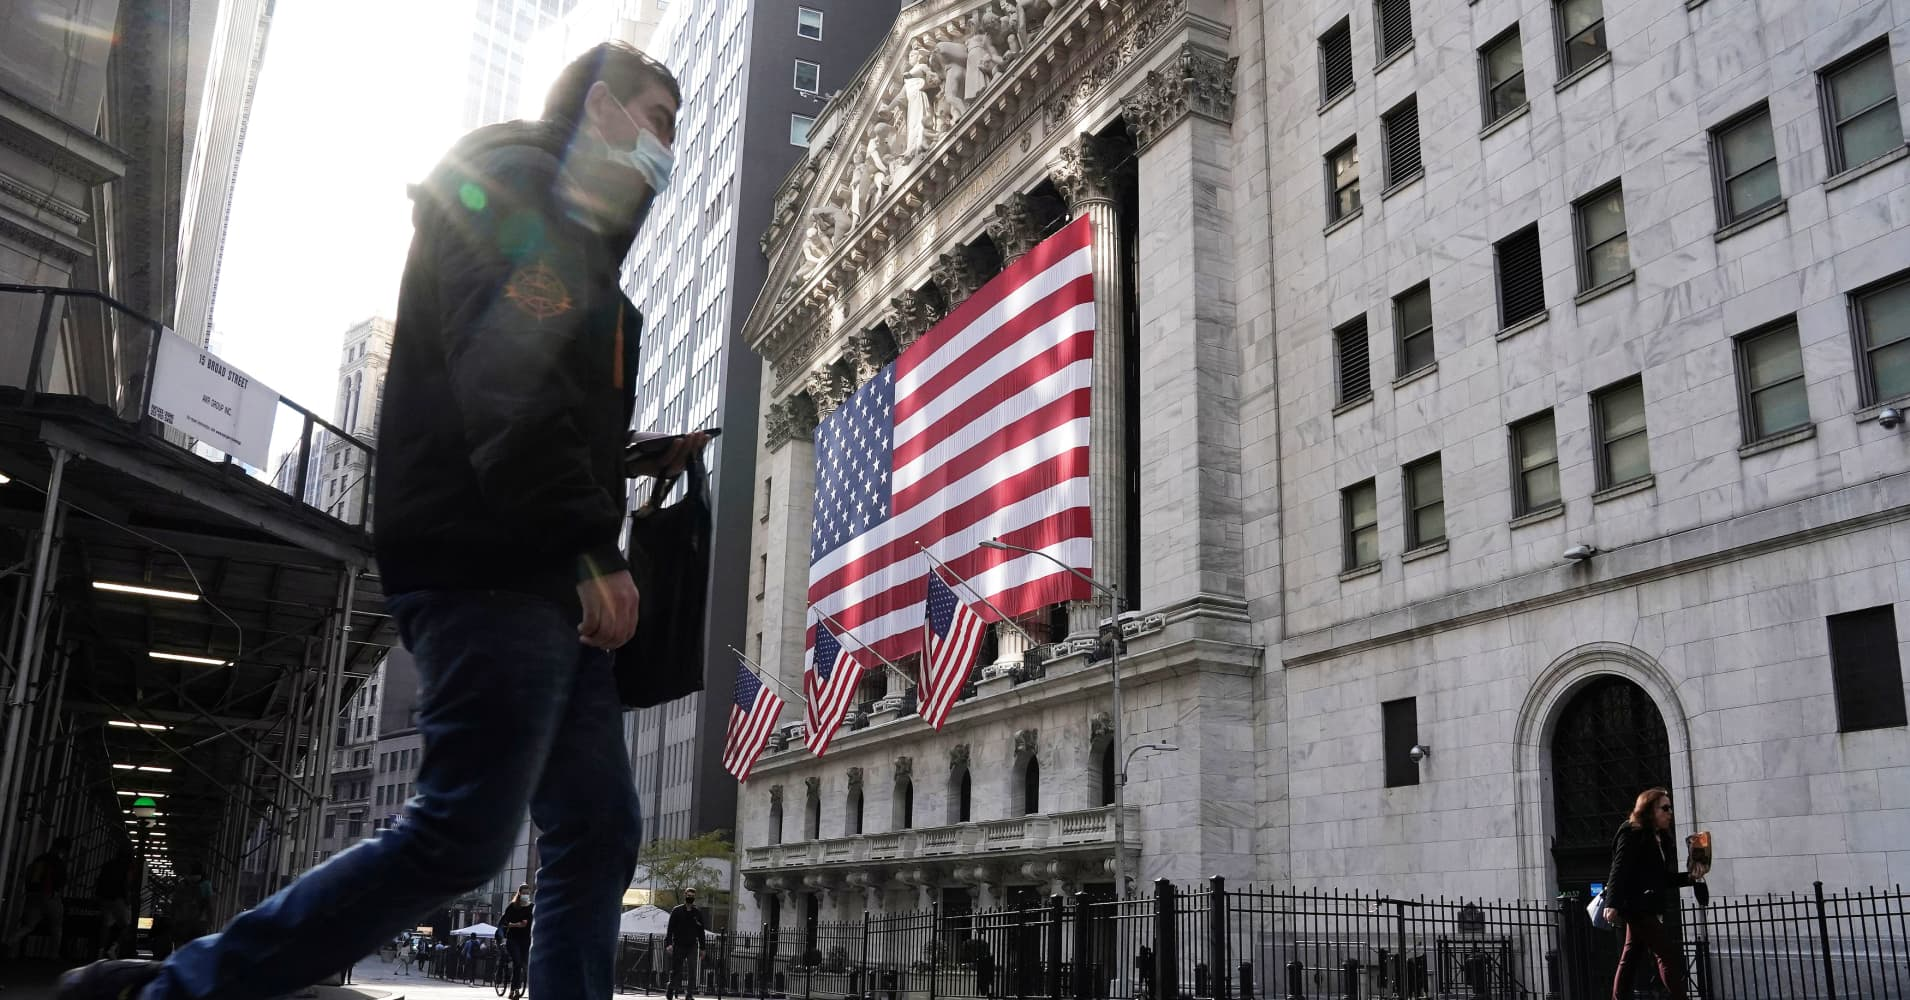 a man standing in front of a building: U.S. stock index futures edged lower for the last trading day of November, as Wall Street prepared to trim historic gains made in the month.